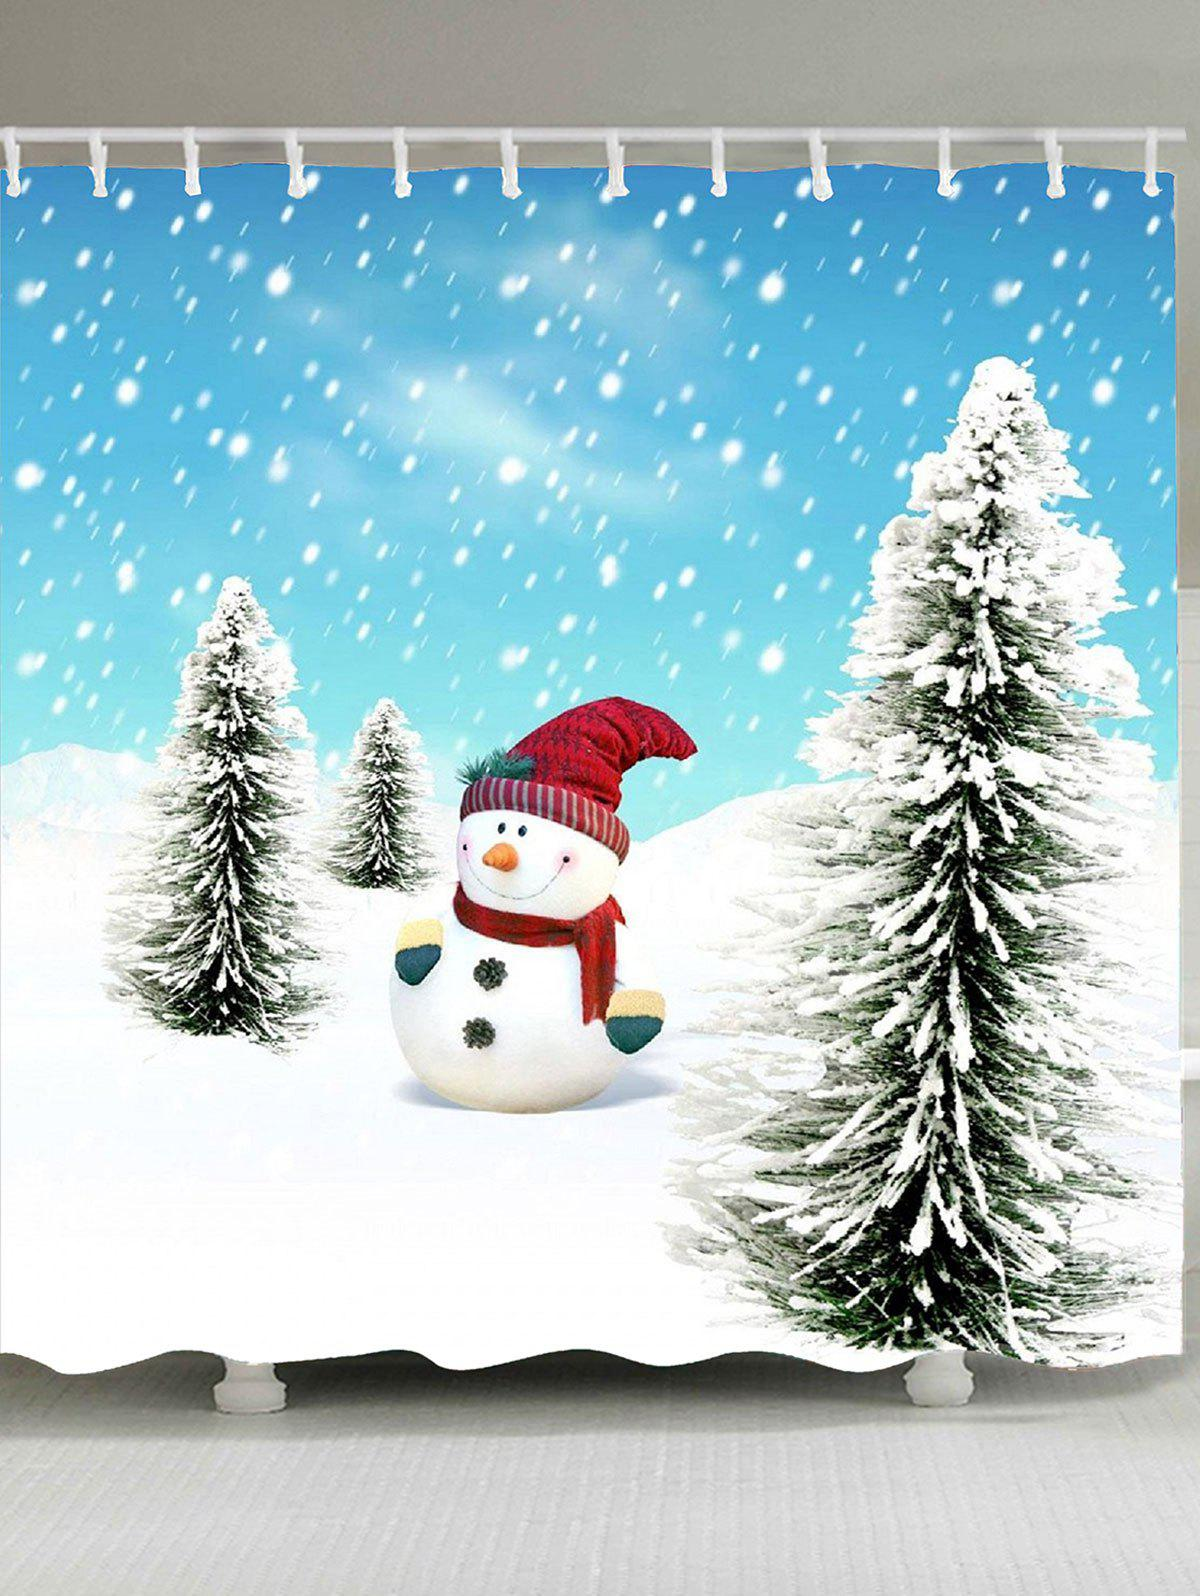 Waterproof Christmas Snowman Pine Pattern Shower Curtain waterproof christmas snowman pine pattern shower curtain